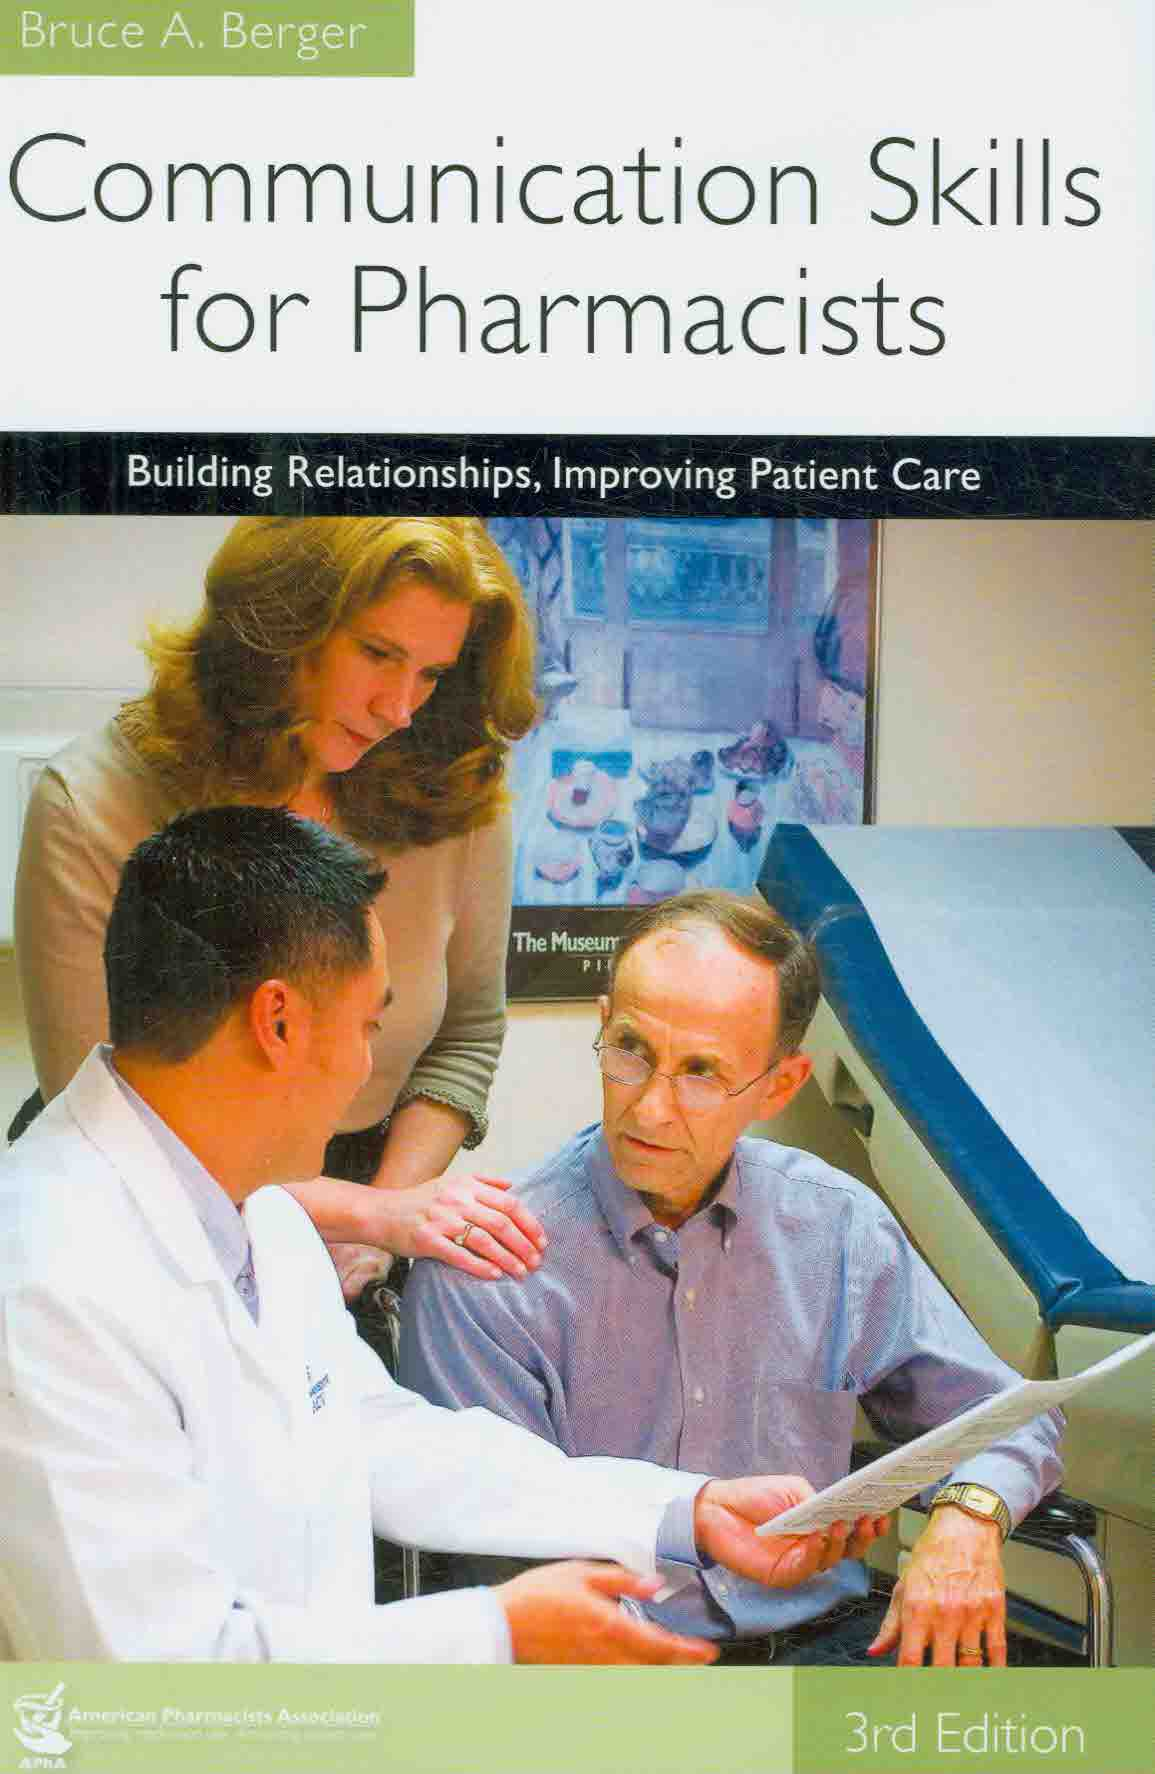 Communication Skills for Pharmacists By Berger, Bruce A.